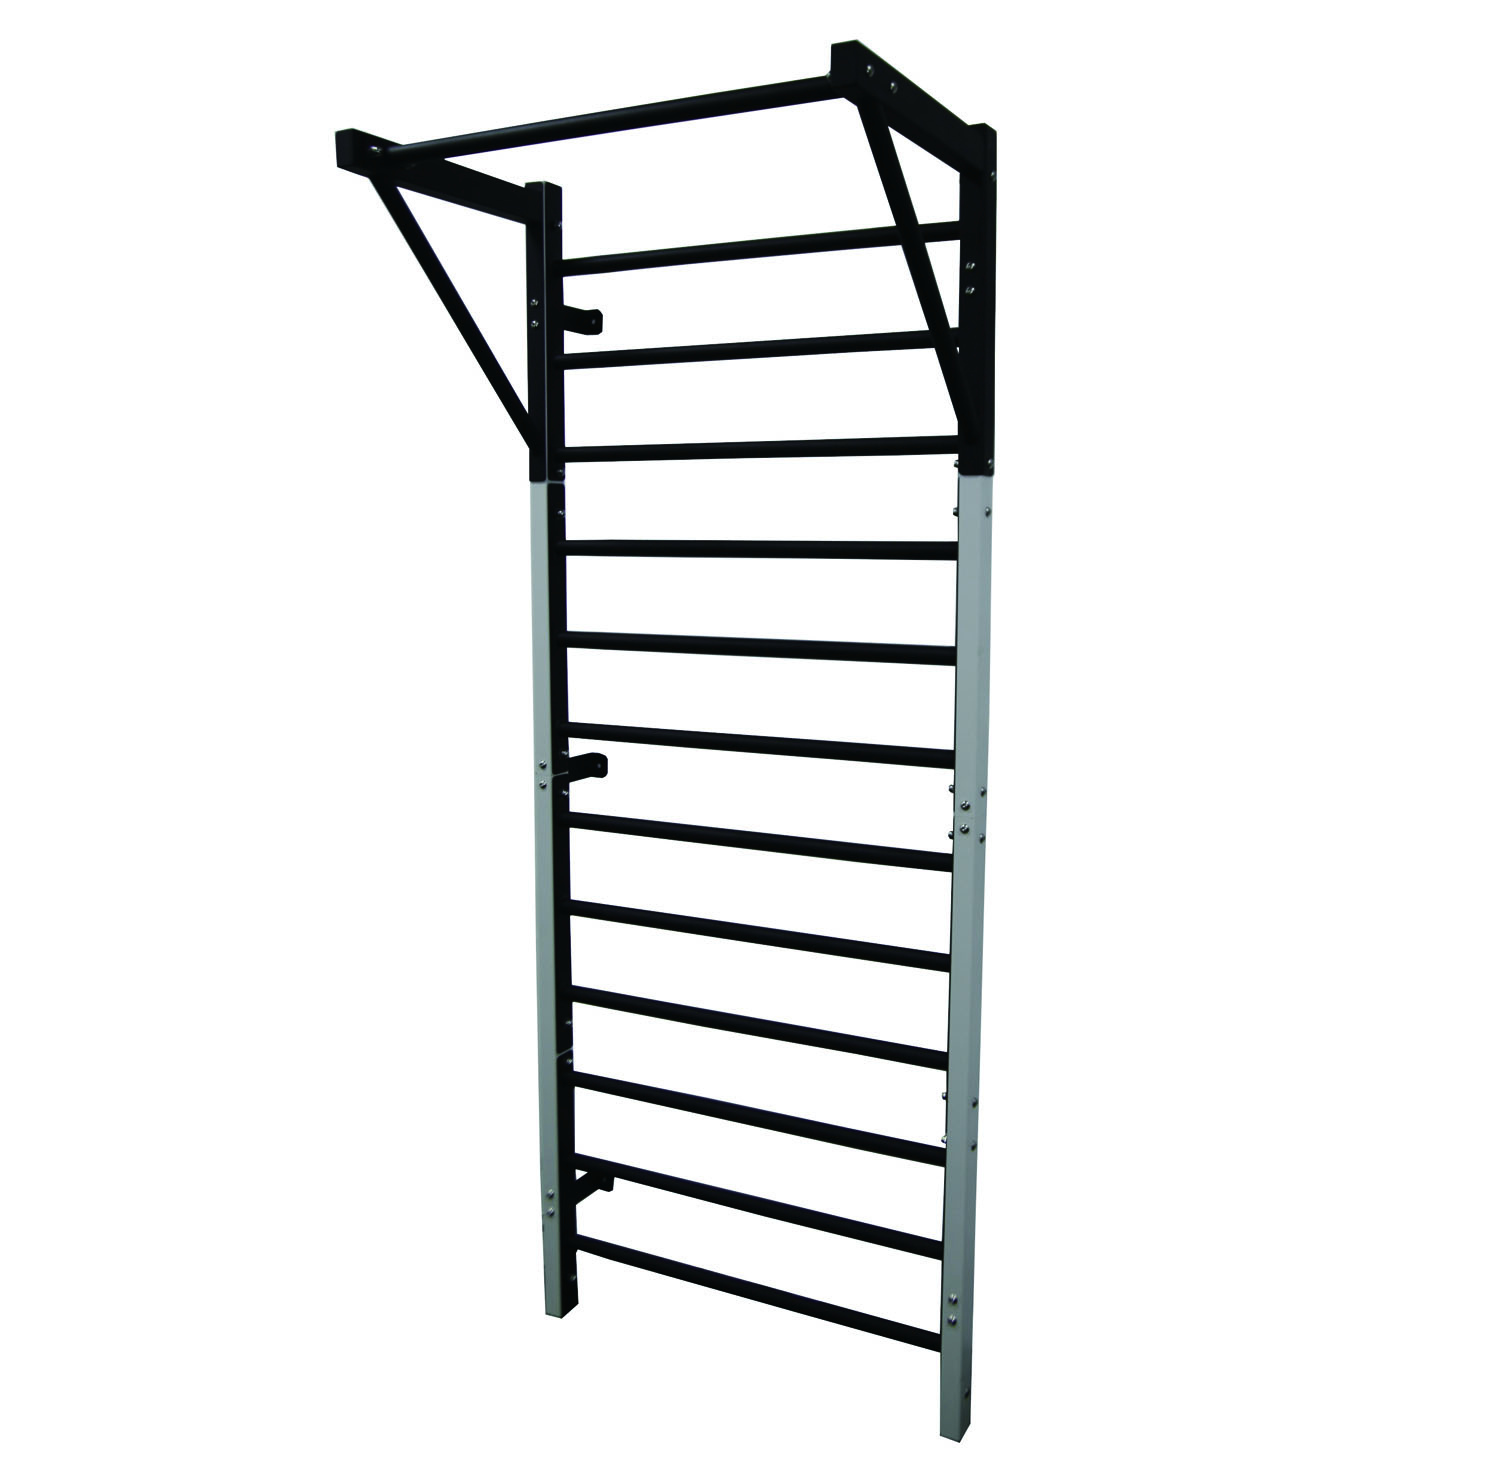 Stretch Rack also Control Parts For Whirlpool Kems378ybl0 together with 0123370 additionally 262301023923 also Stainless Steel Wall Mounted Shelf. on microwave oven shelf bracket